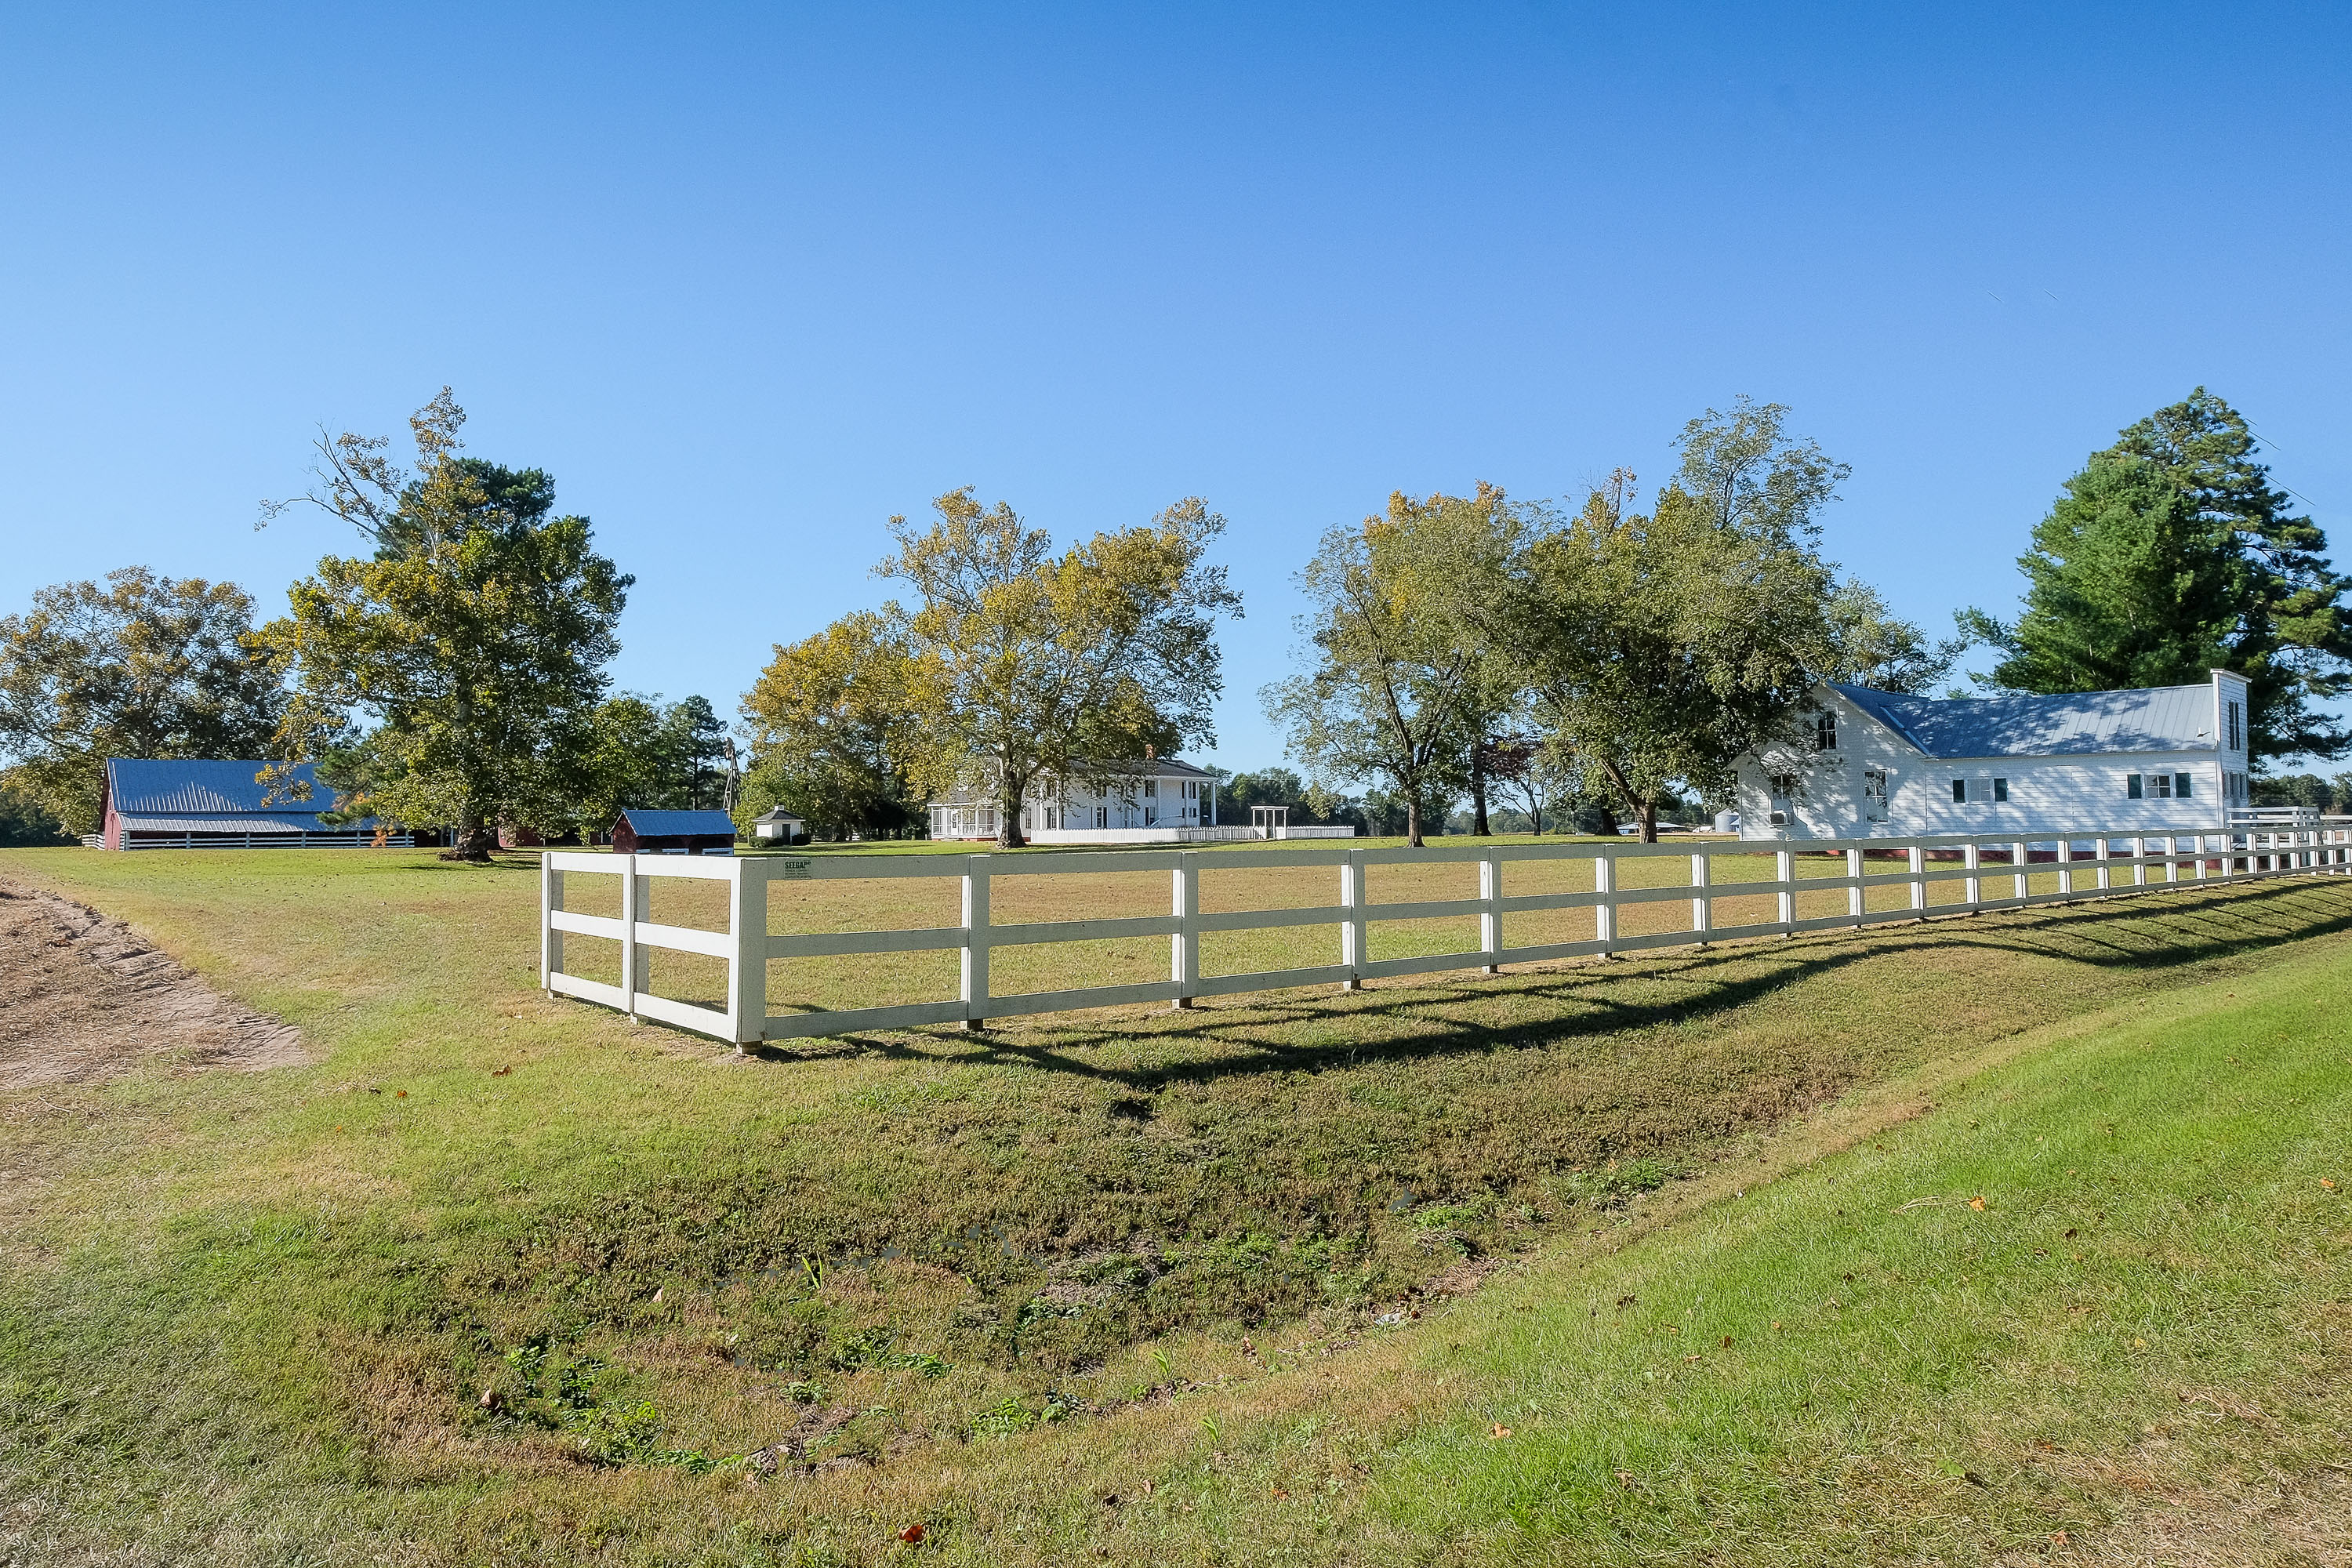 Maison unifamiliale pour l Vente à Gracious, Farm Property-Endless Possibilities 321 Riverby Farm Road Edenton, Carolina Du Nord, 27932 États-Unis